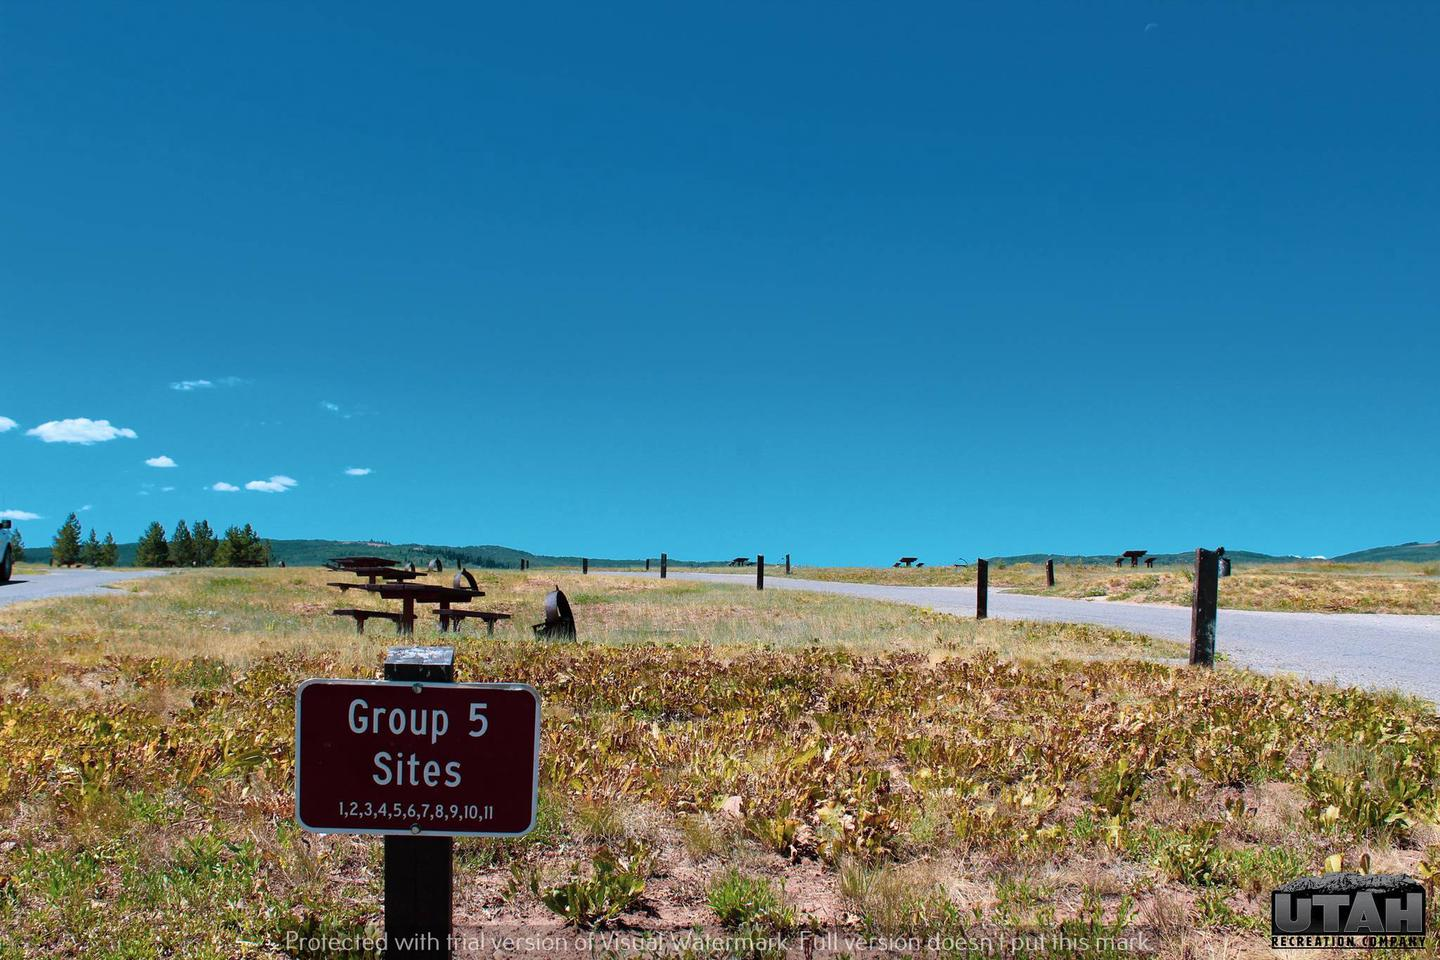 Group 5 Sites